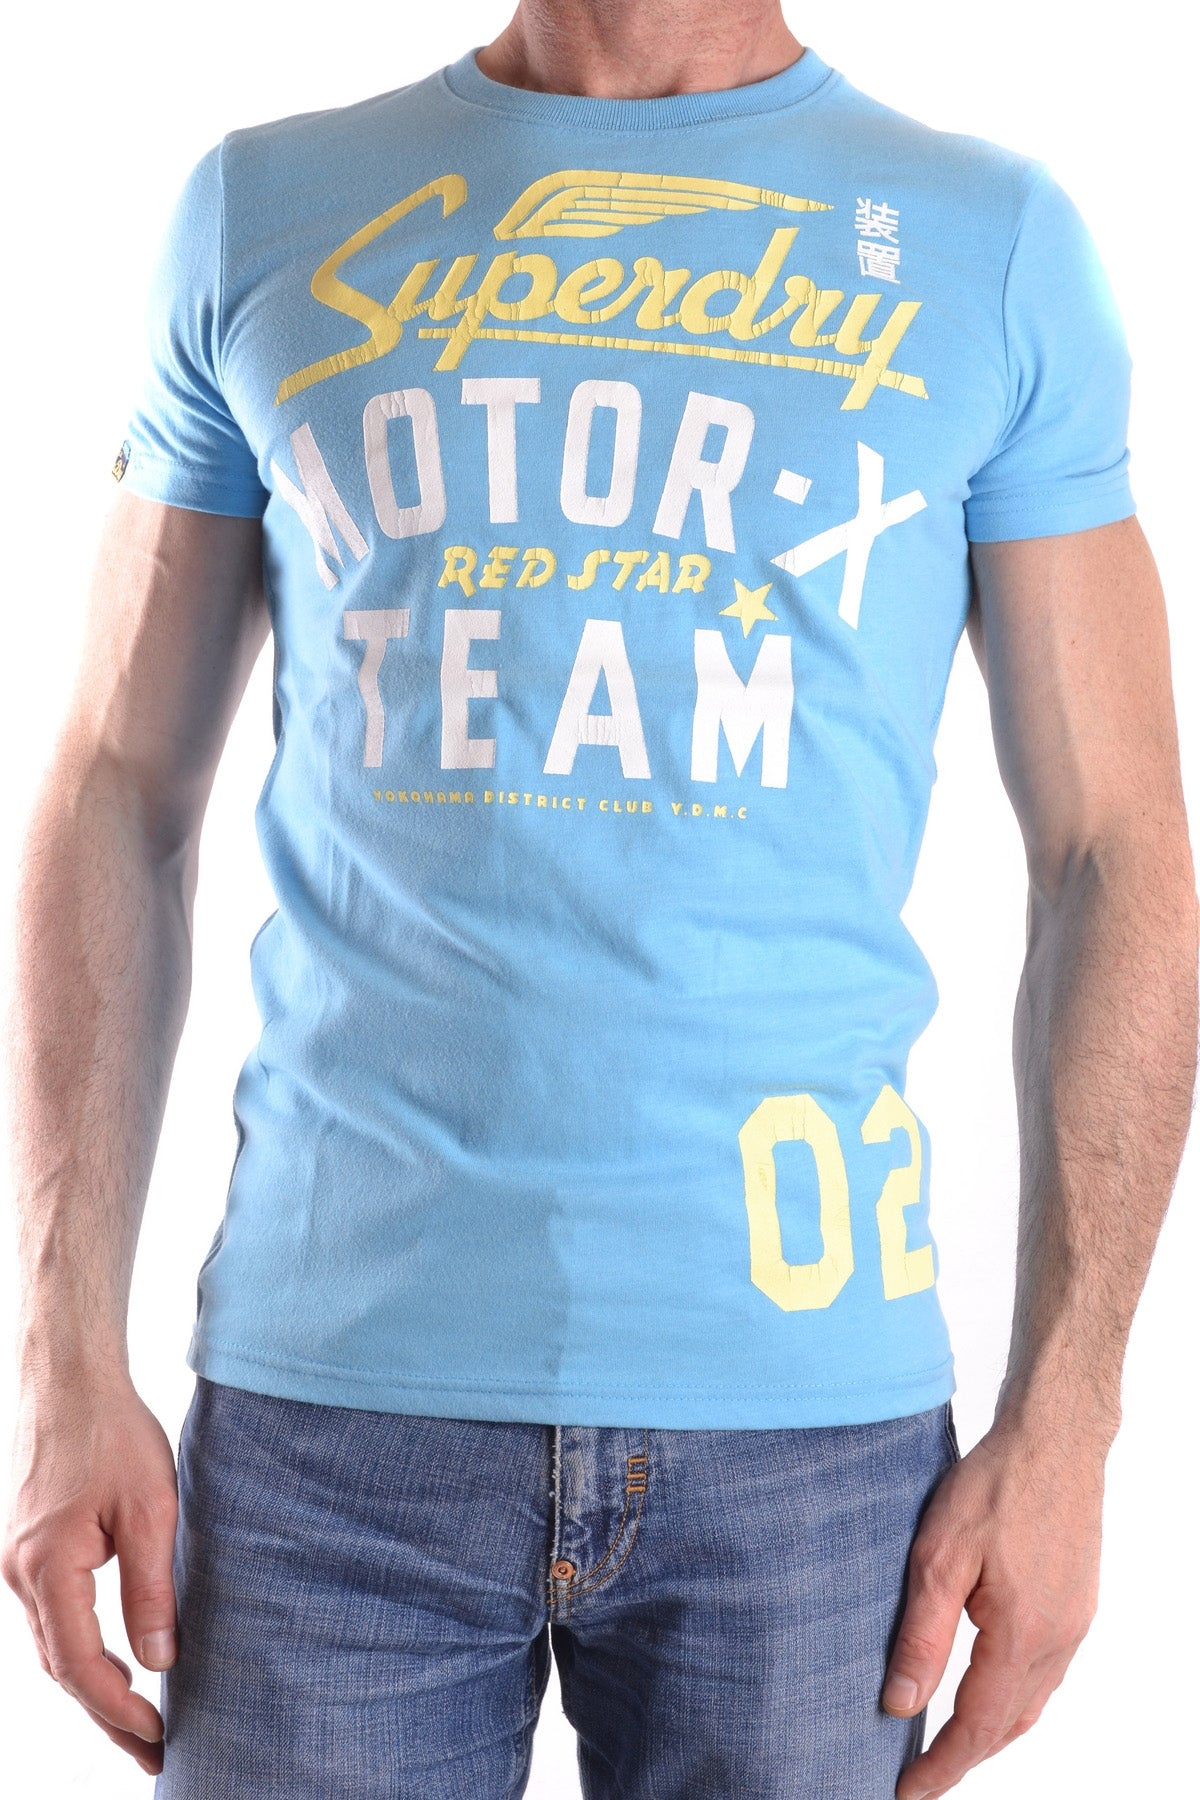 T-Shirt Superdry-Men's Fashion - Men's Clothing - Tops & Tees - T-Shirts-XS-Product Details Composition: Cotton 65%, Polyester 35%Size: IntGender: ManMade In: TurcheySeason: Spring / SummerMain Color: HeavenlyClothing Type: T-ShirtTerms: New With LabelYear: 2017-Keyomi-Sook